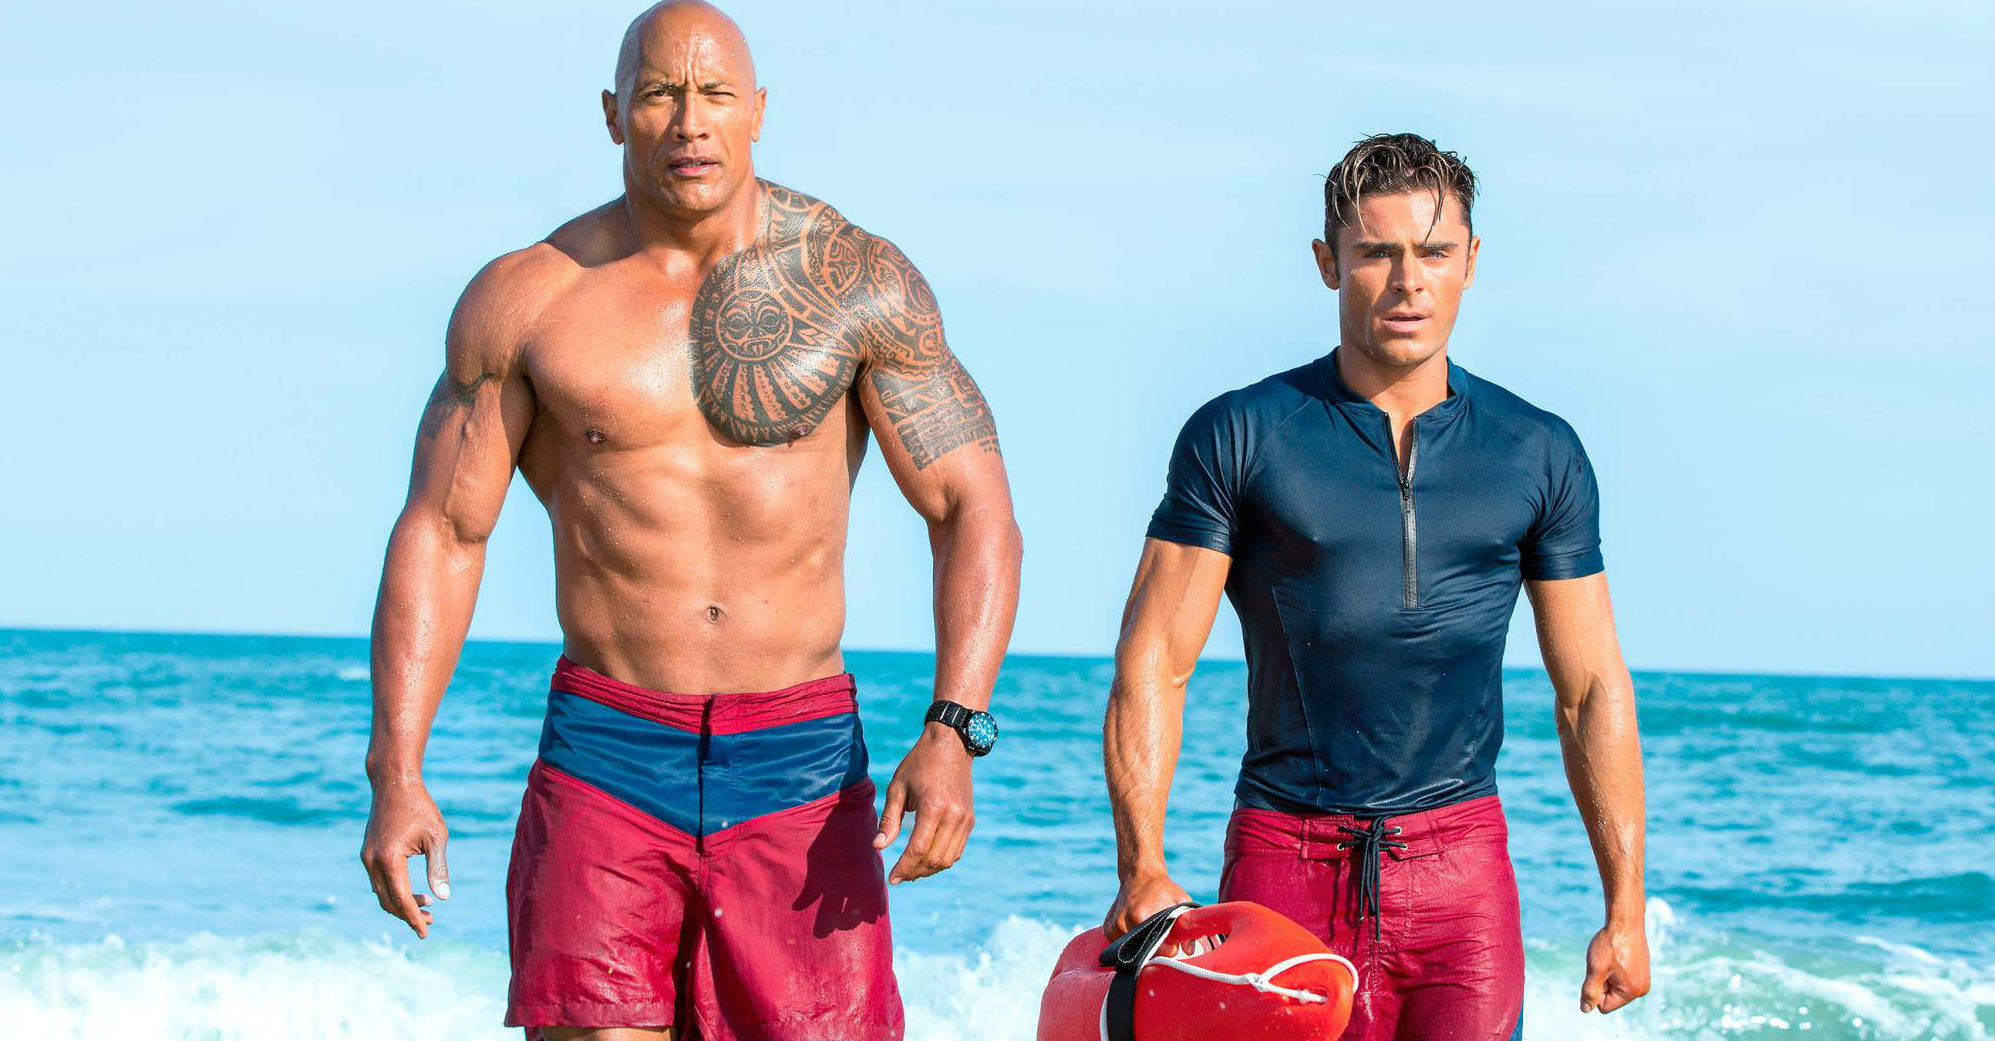 Dwayne Johnson And Zac Efron Strut Their Stuff In New Baywatch Image